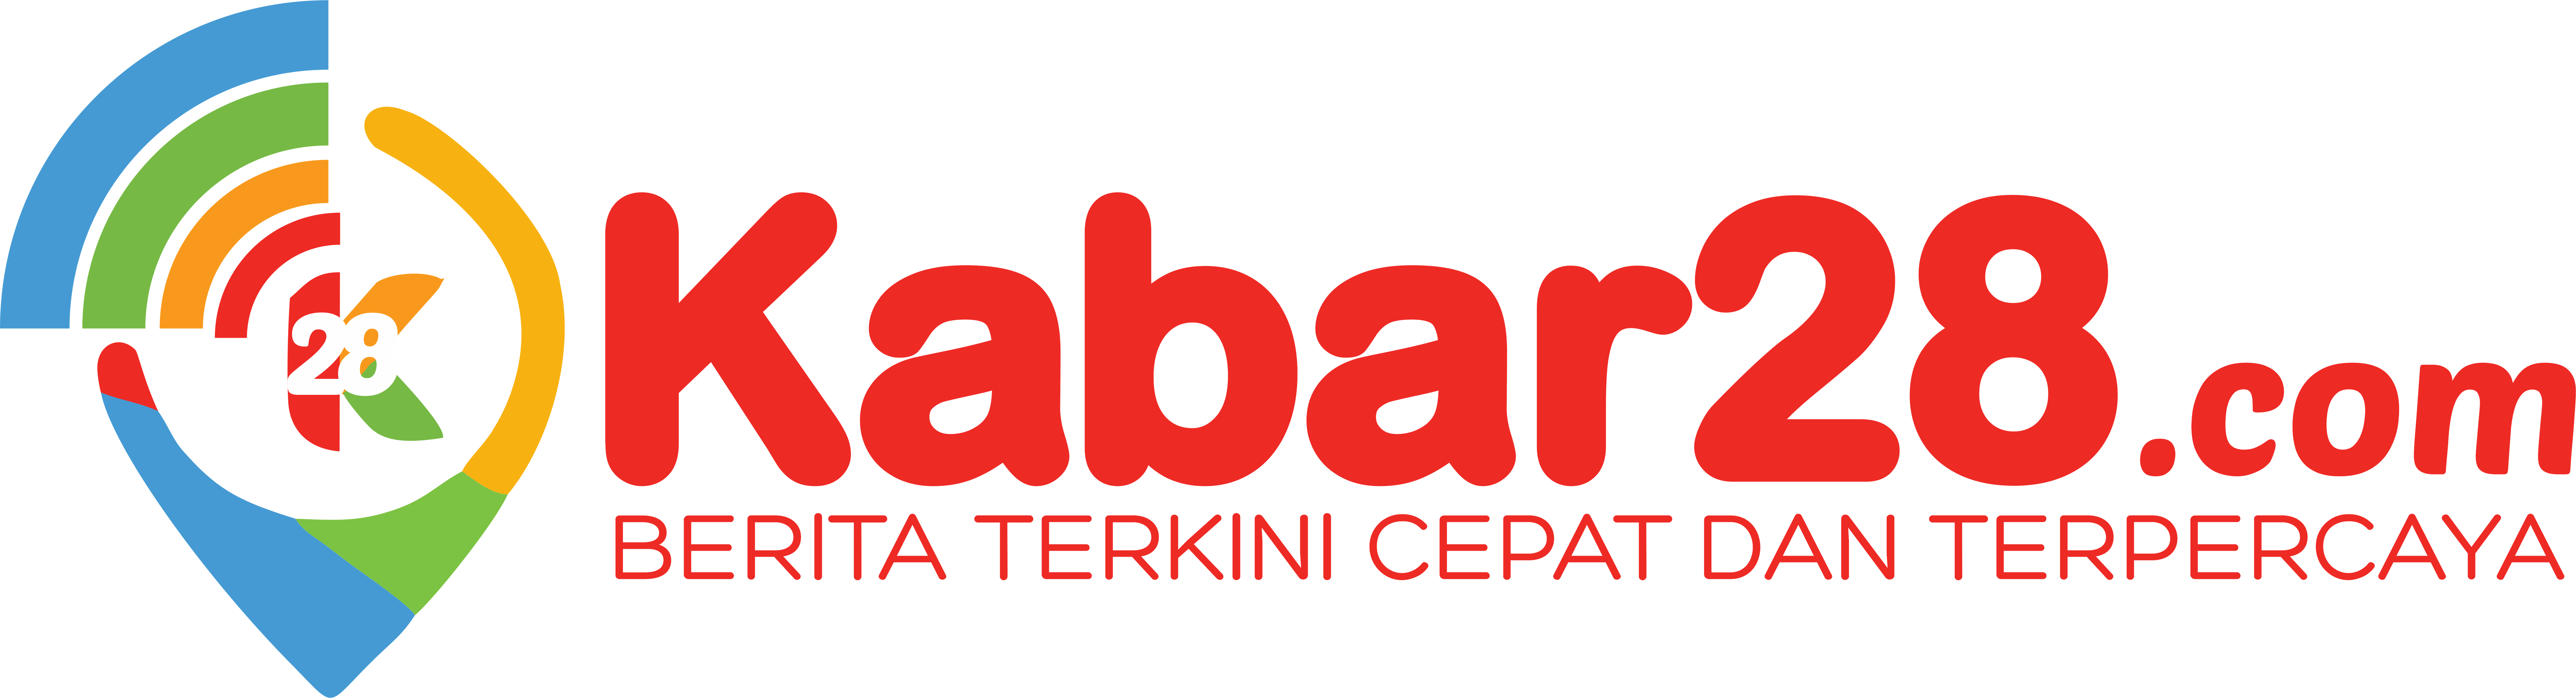 Kabar28.com